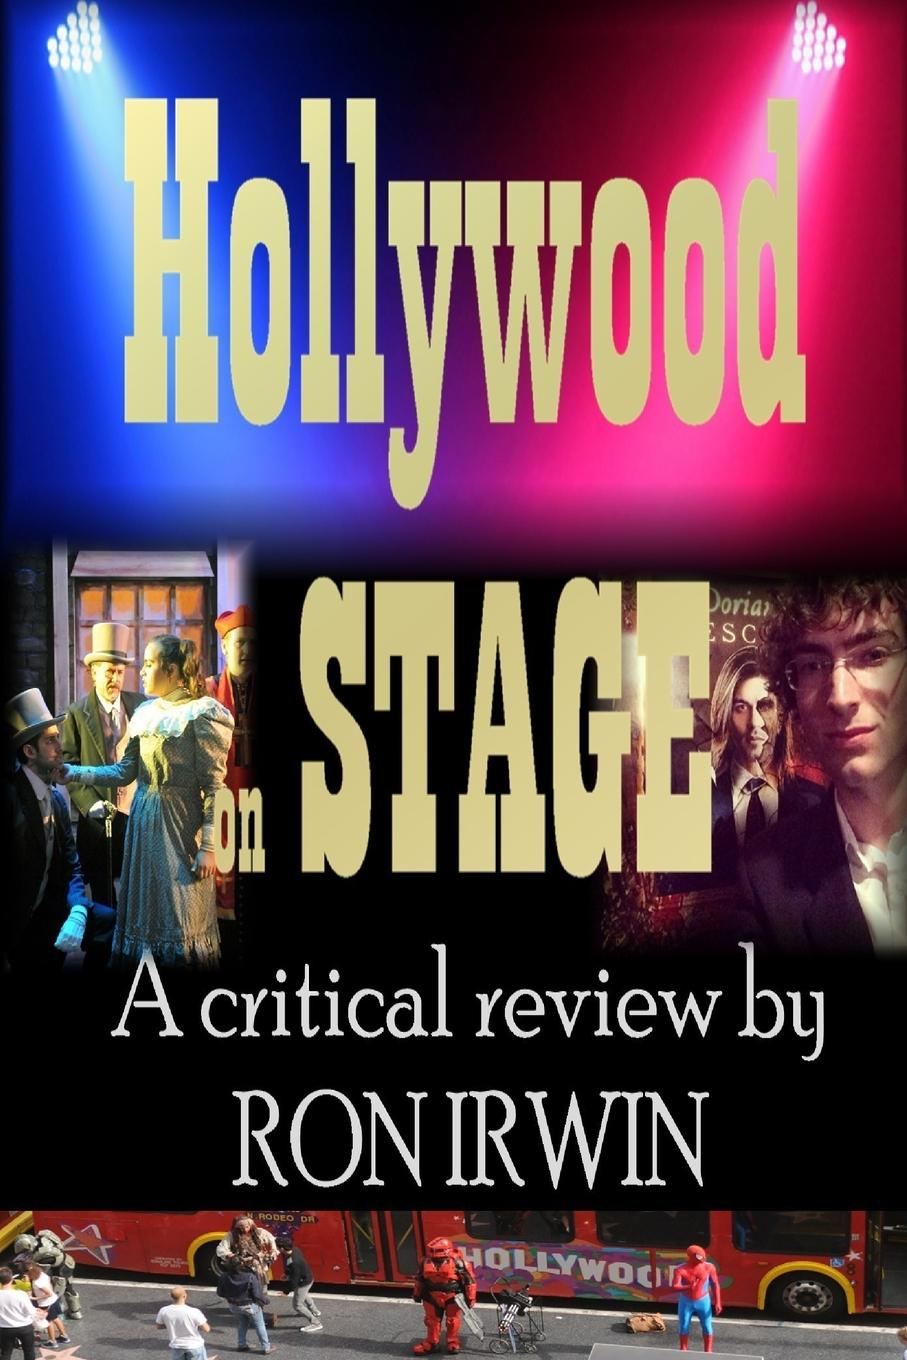 Ron Irwin Hollywood on Stage A critical review by Ron Irwin недорого